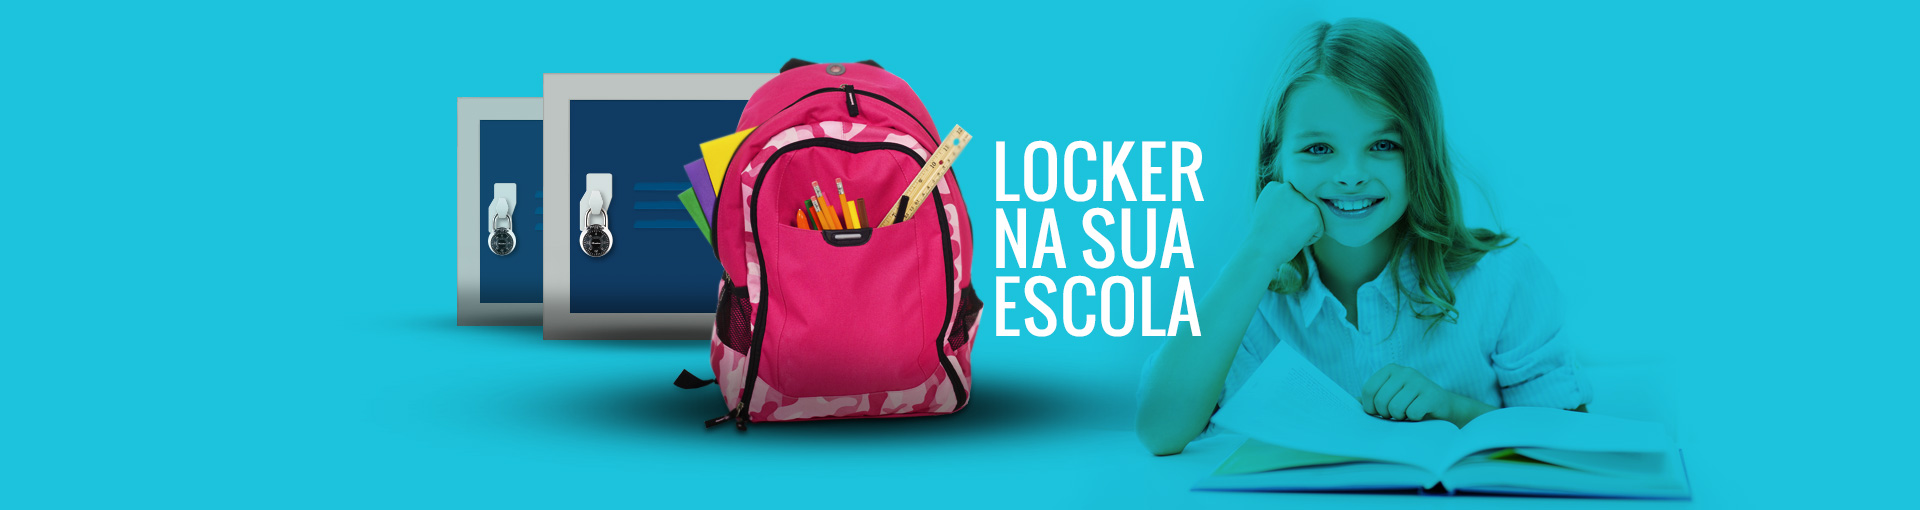 03-locker_banner_site_escola